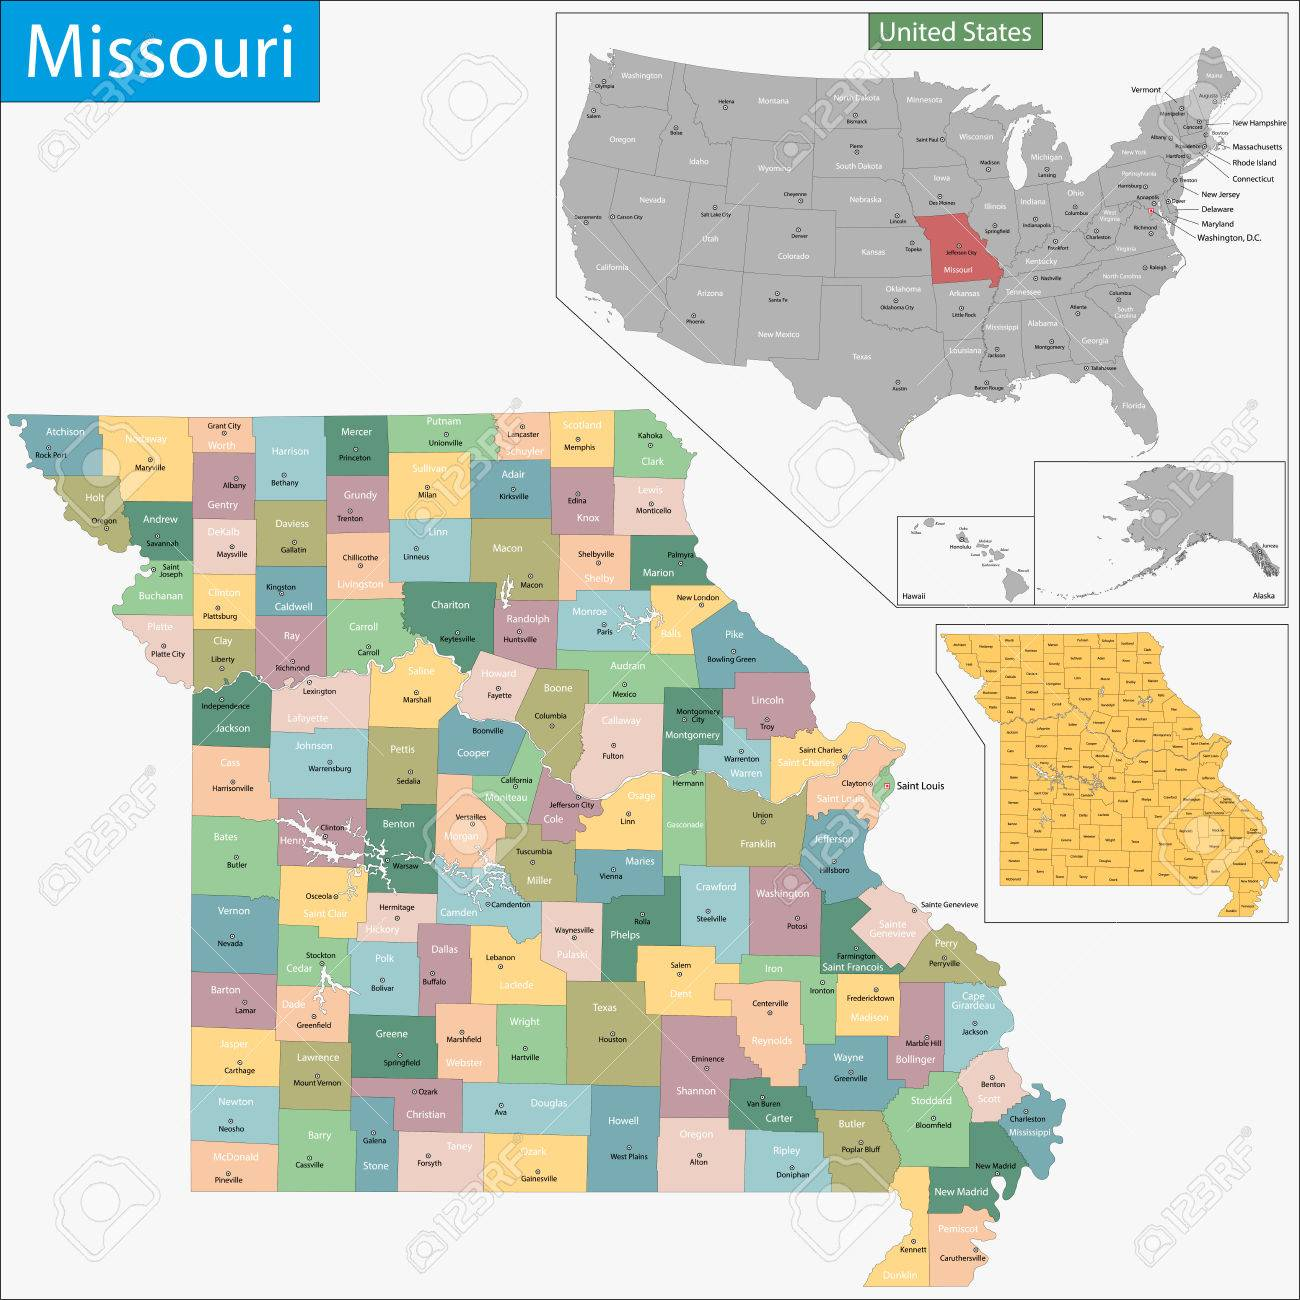 Map Of Missouri State Designed In Illustration With The Counties - Missouri county map